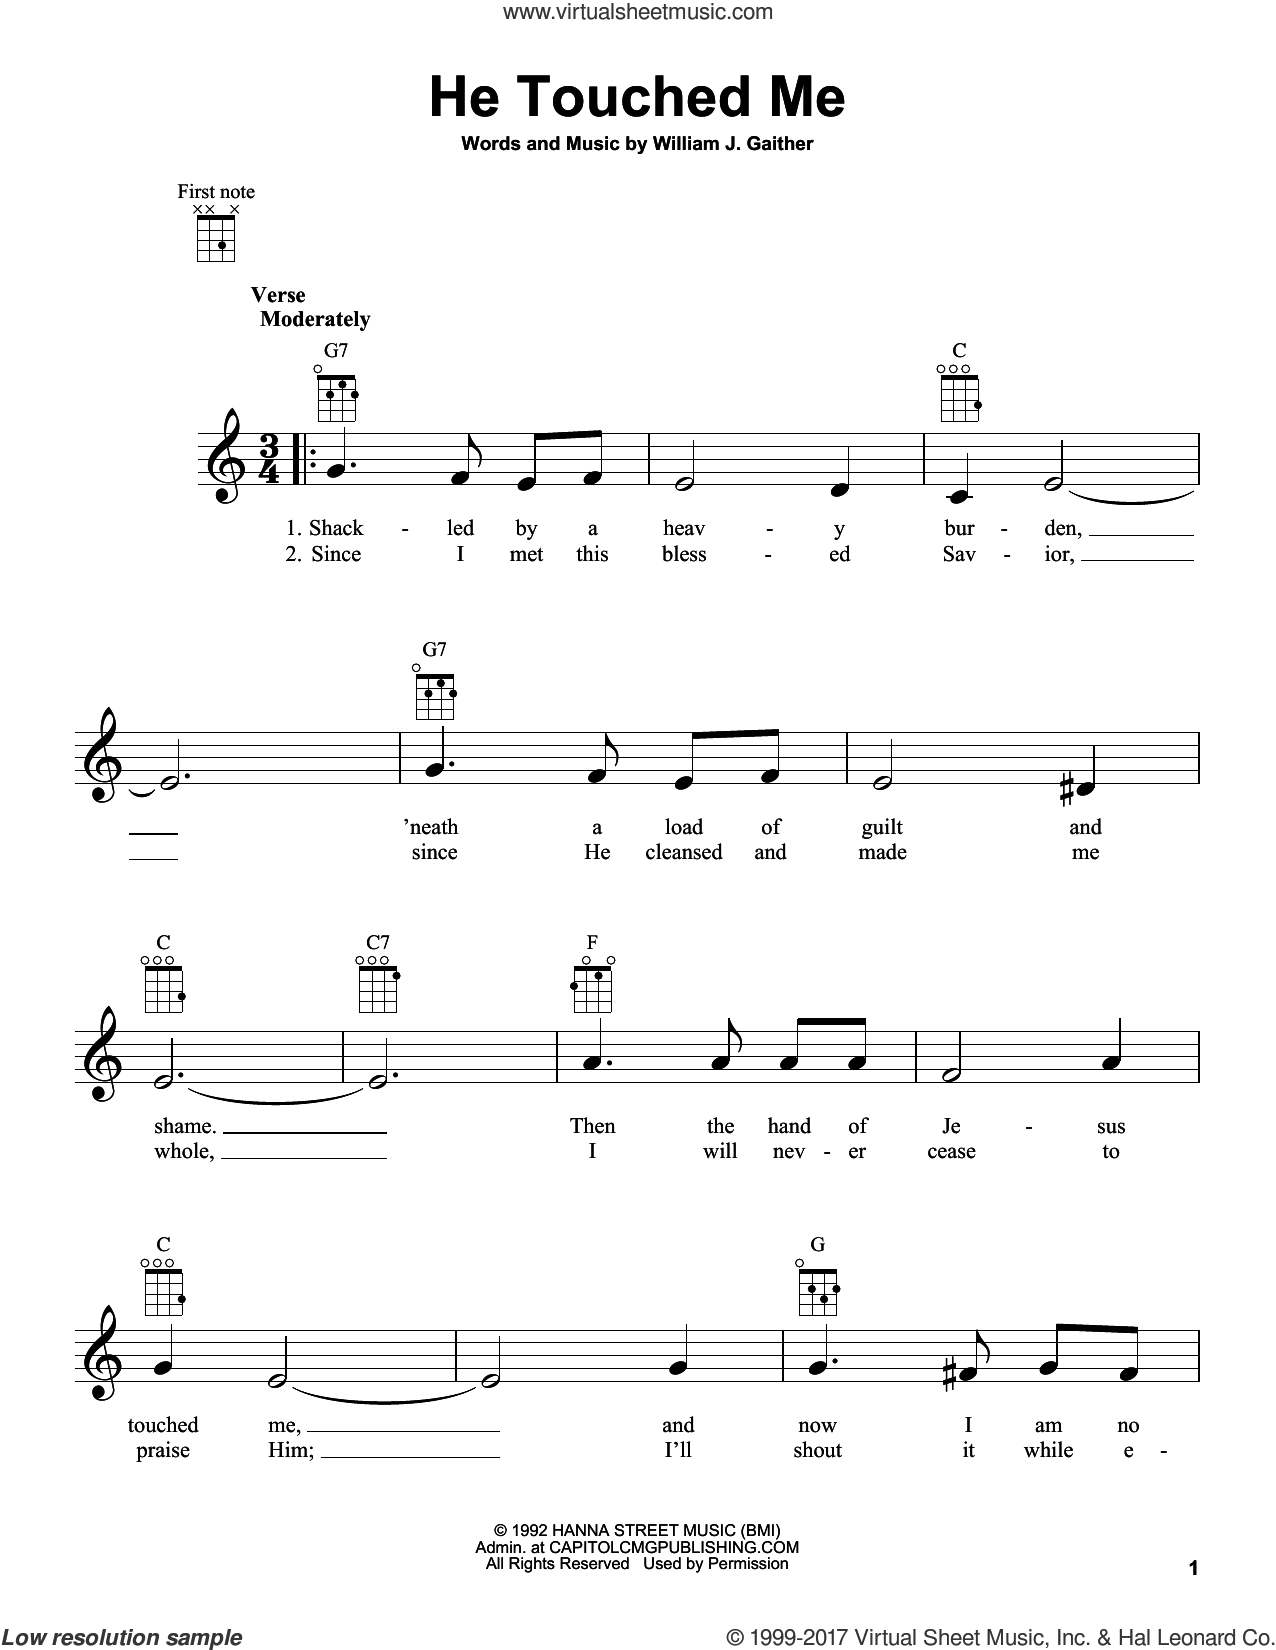 He Touched Me sheet music for ukulele by William J. Gaither. Score Image Preview.